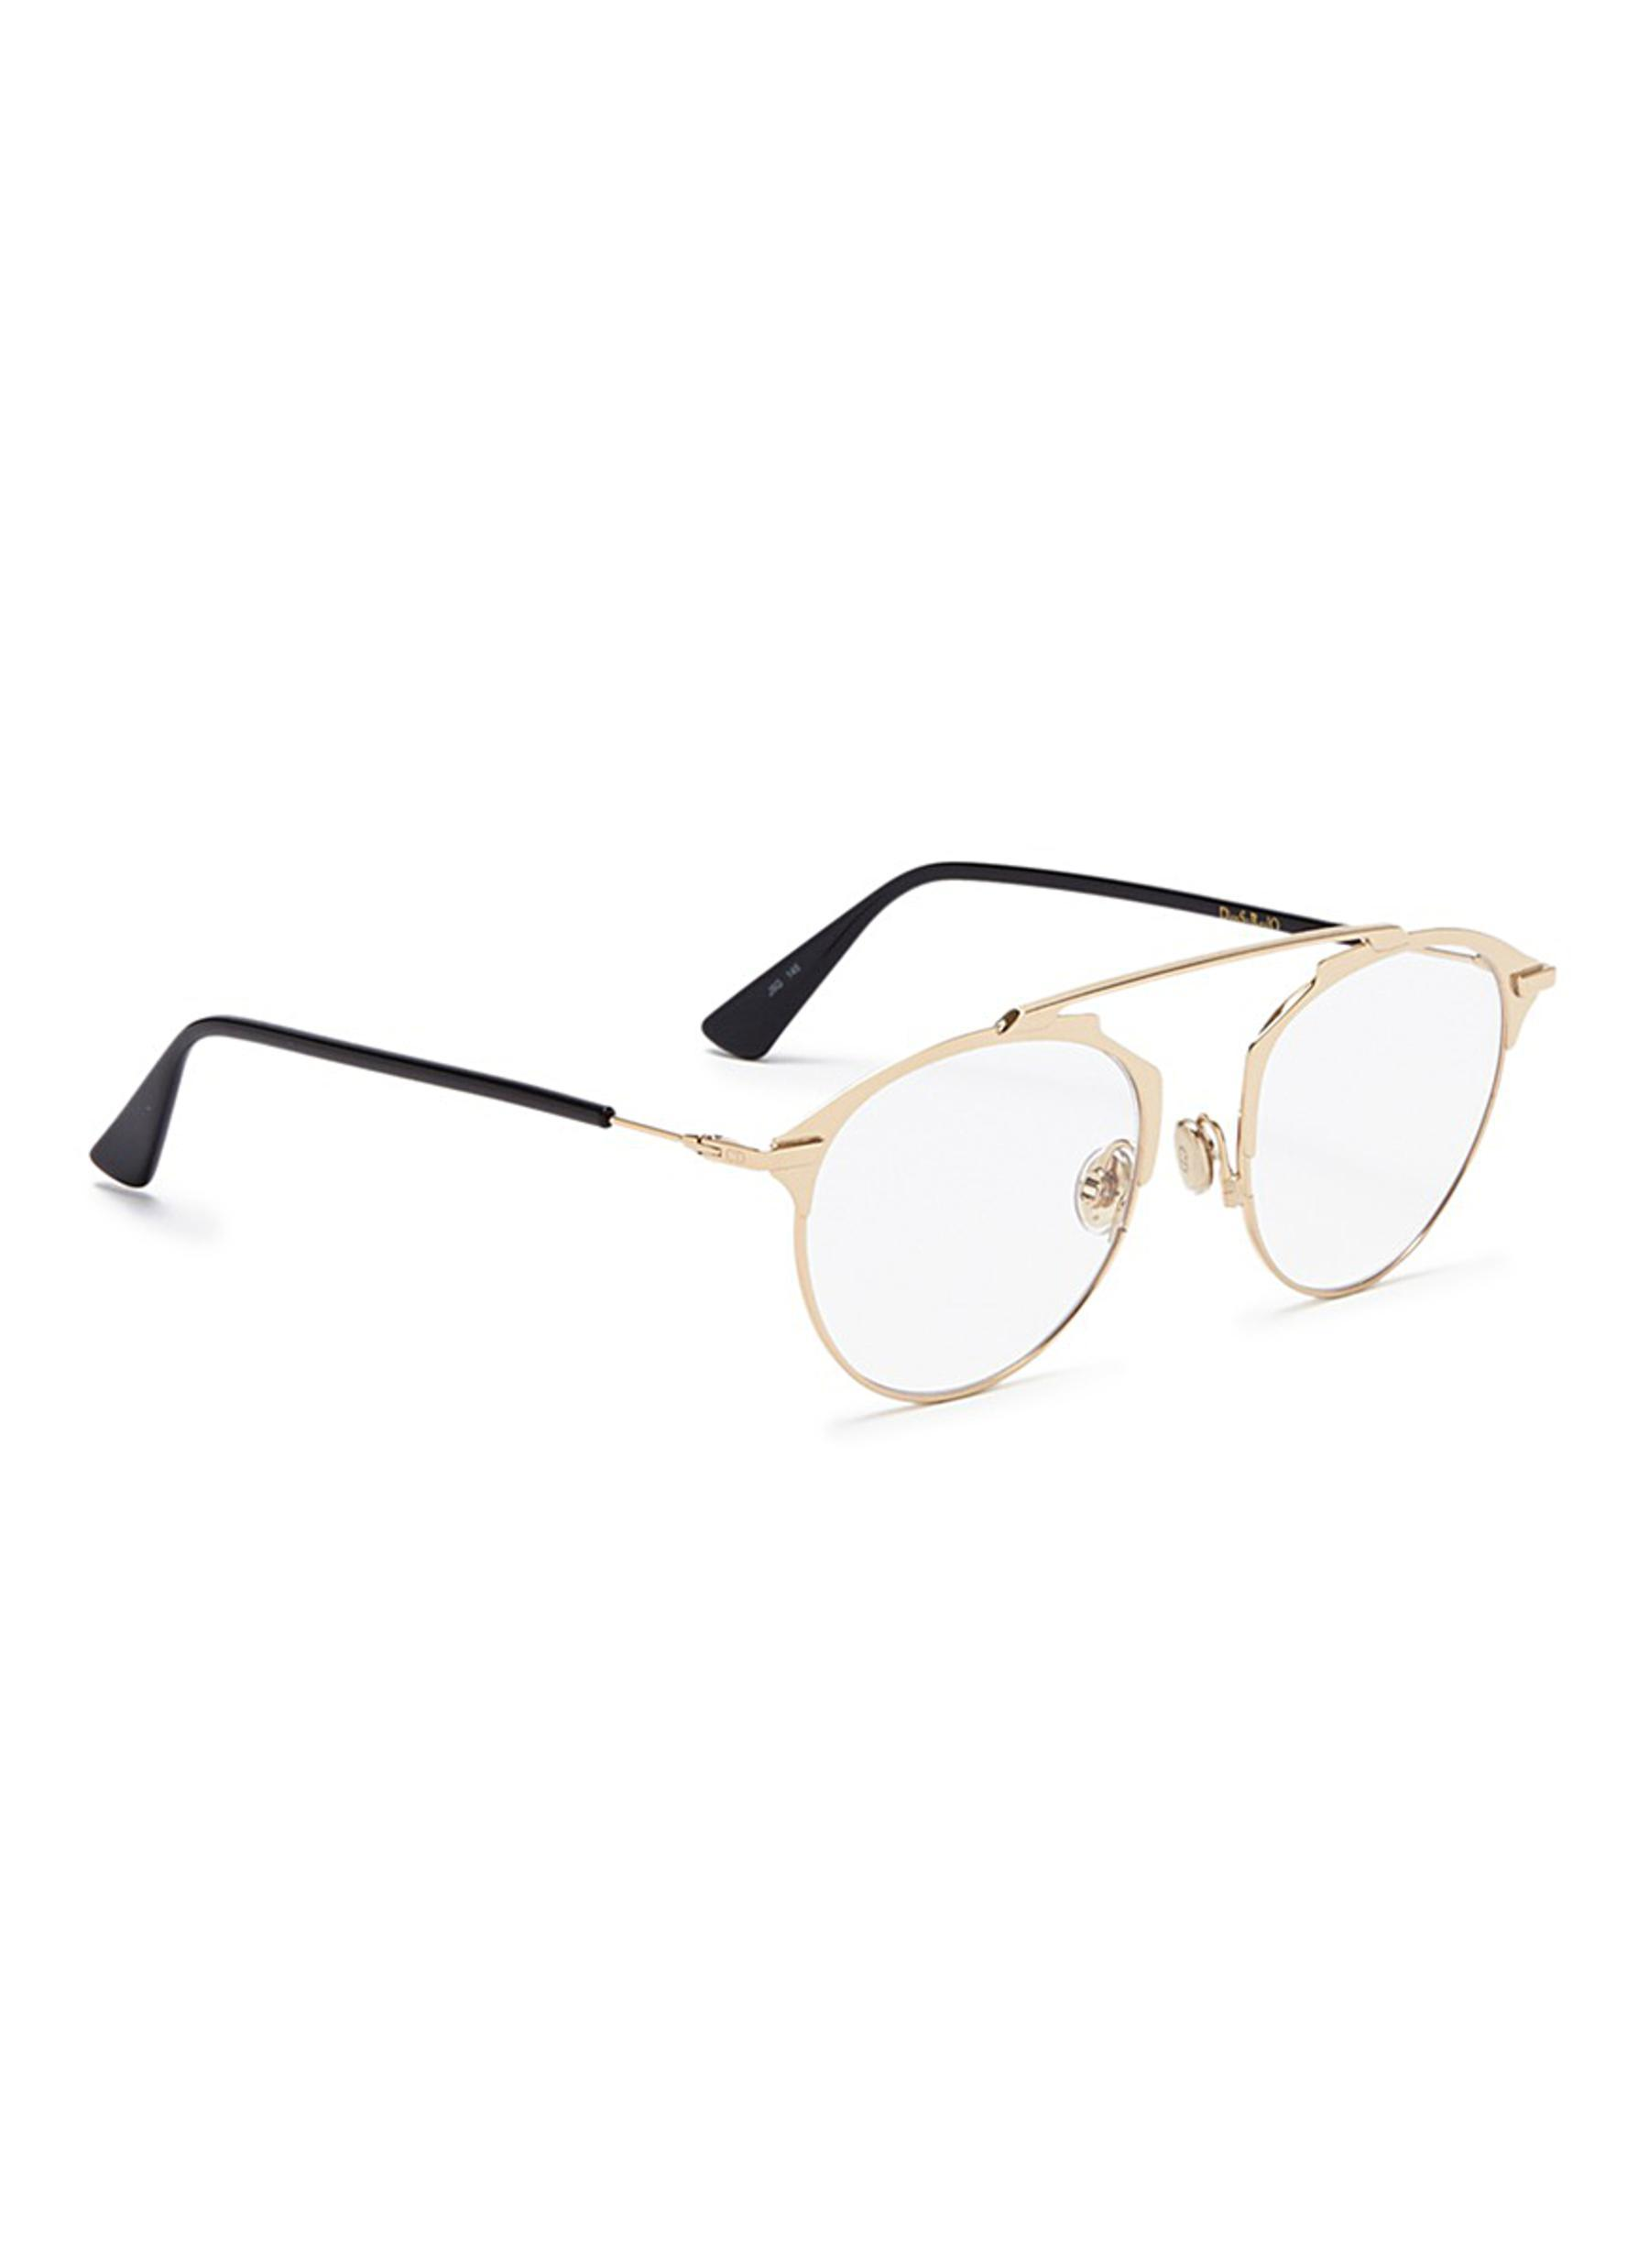 573f749a212 Lyst - Dior   So Real  Metal Panto Optical Glasses in Metallic